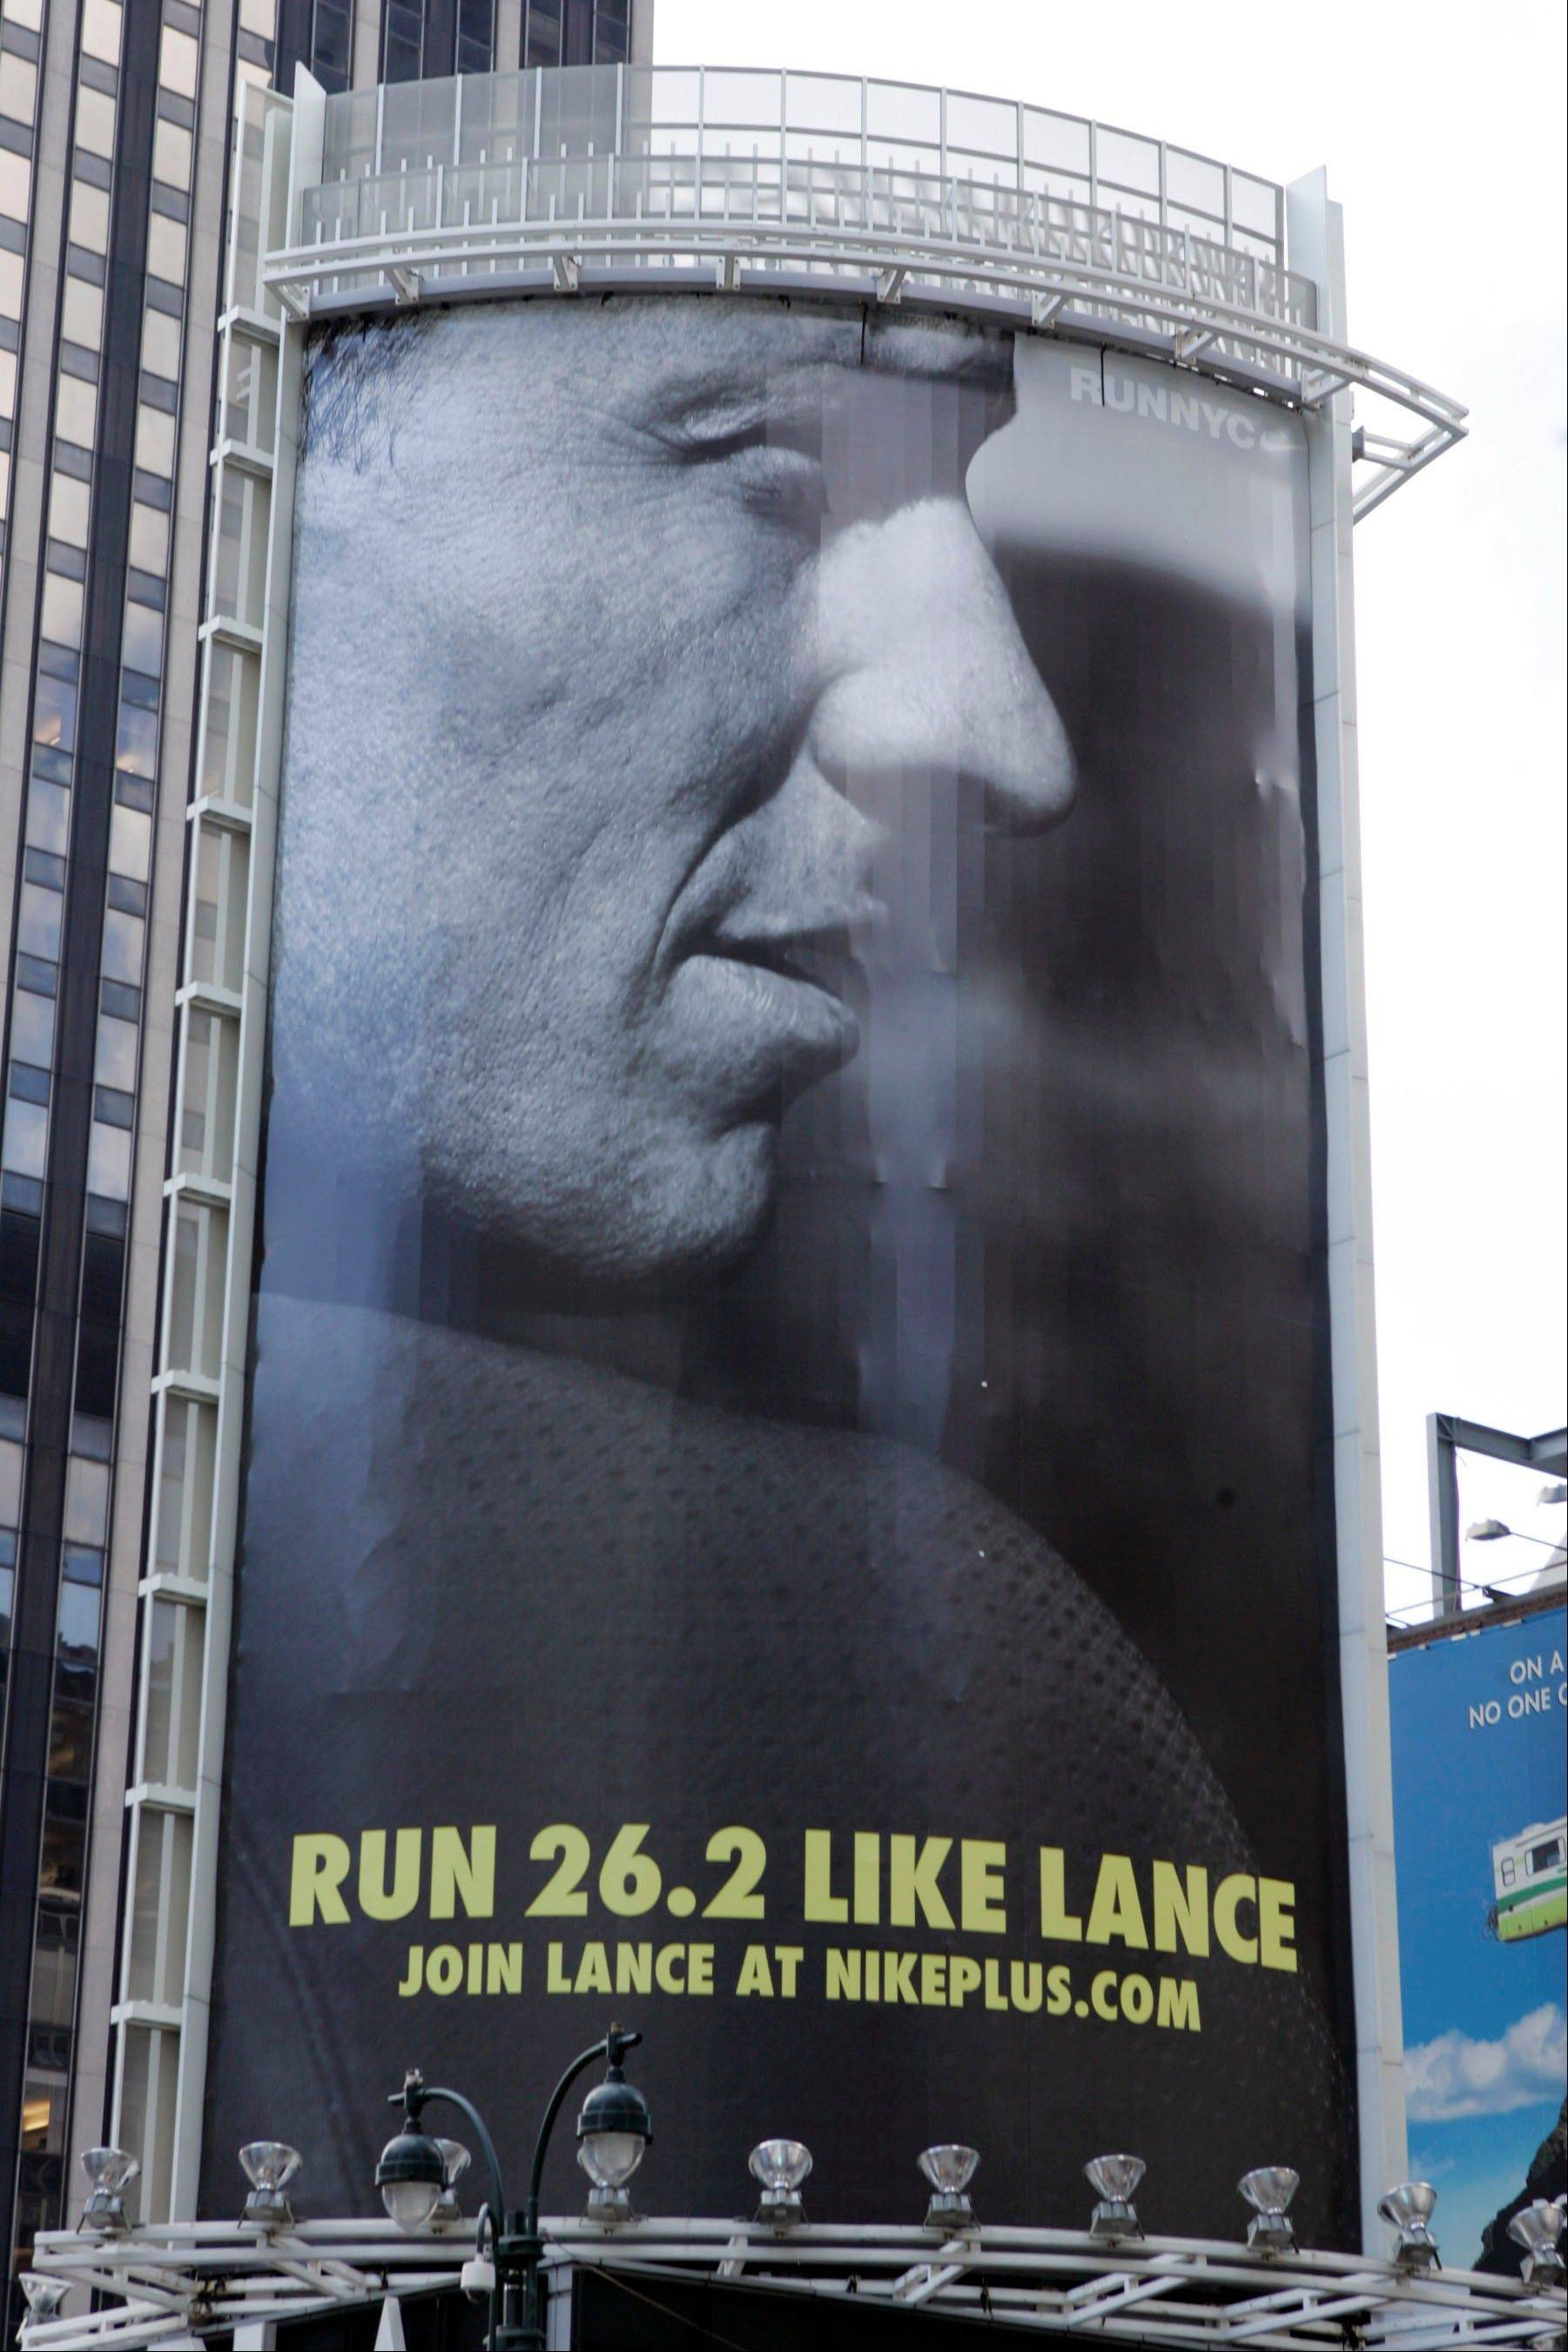 Associated Press In 2006, Lance Armstrong and Nike challenge New Yorkers to �Run Like Lance.� Nike said Wednesday, Oct. 17, 2012, that it is severing ties with Armstrong, citing insurmountable evidence that the cyclist participated in doping and misled the company for more than a decade.